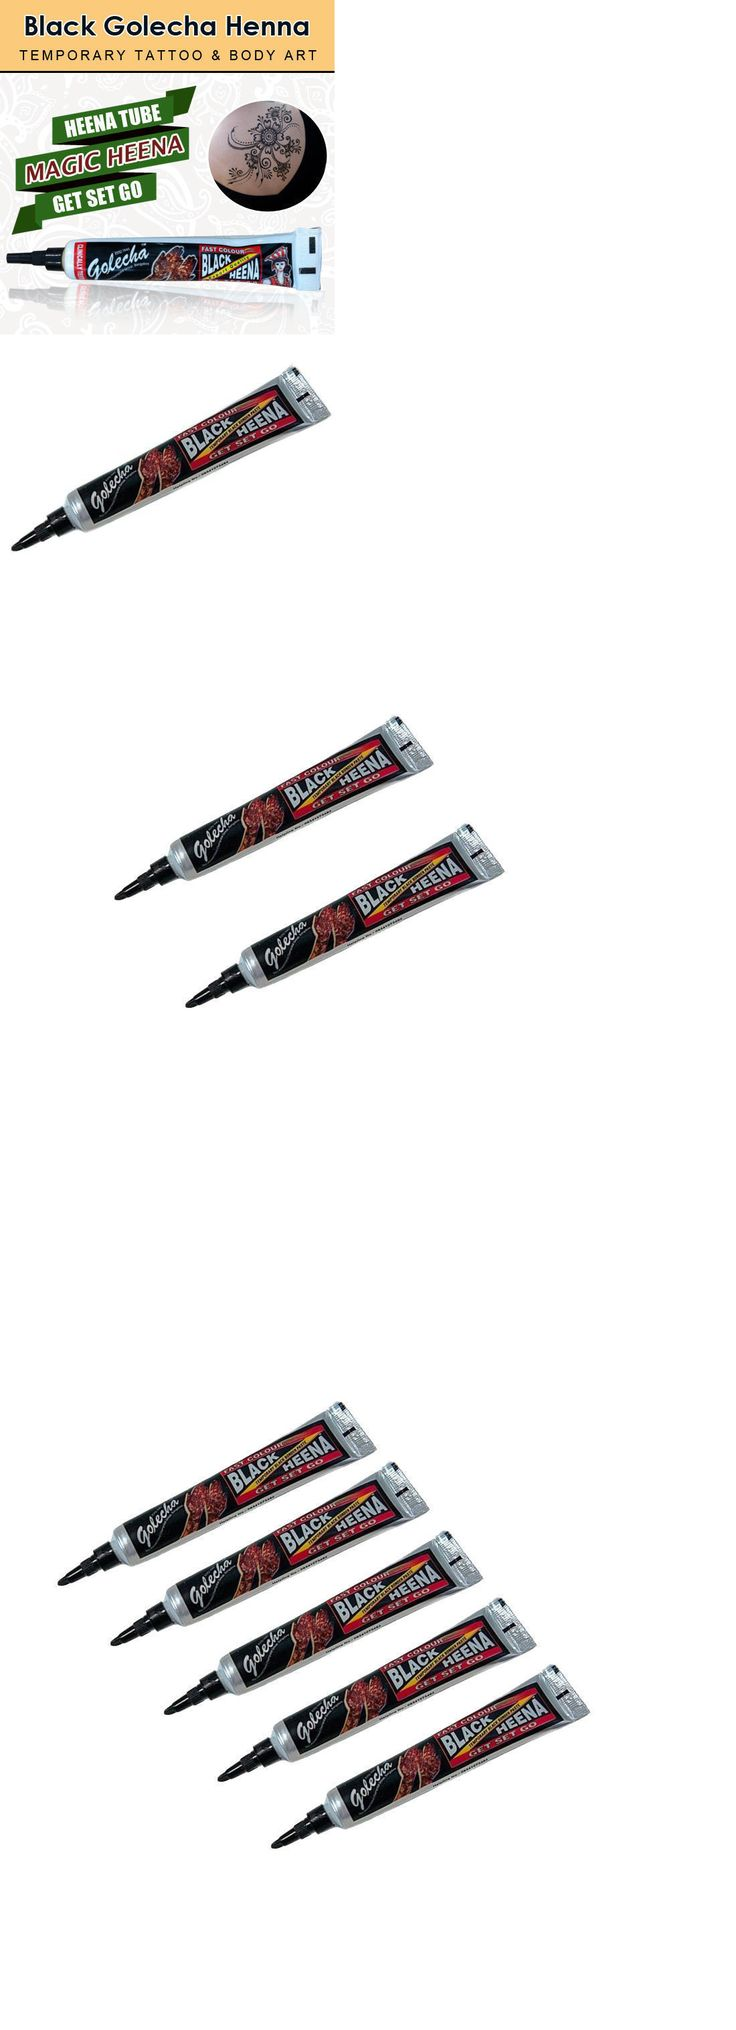 Henna Paste and Powder: Golecha Black Henna Tubes 100% Instant Fast For Tattoos Body Art Jagua Tattoos -> BUY IT NOW ONLY: $33.0 on eBay!